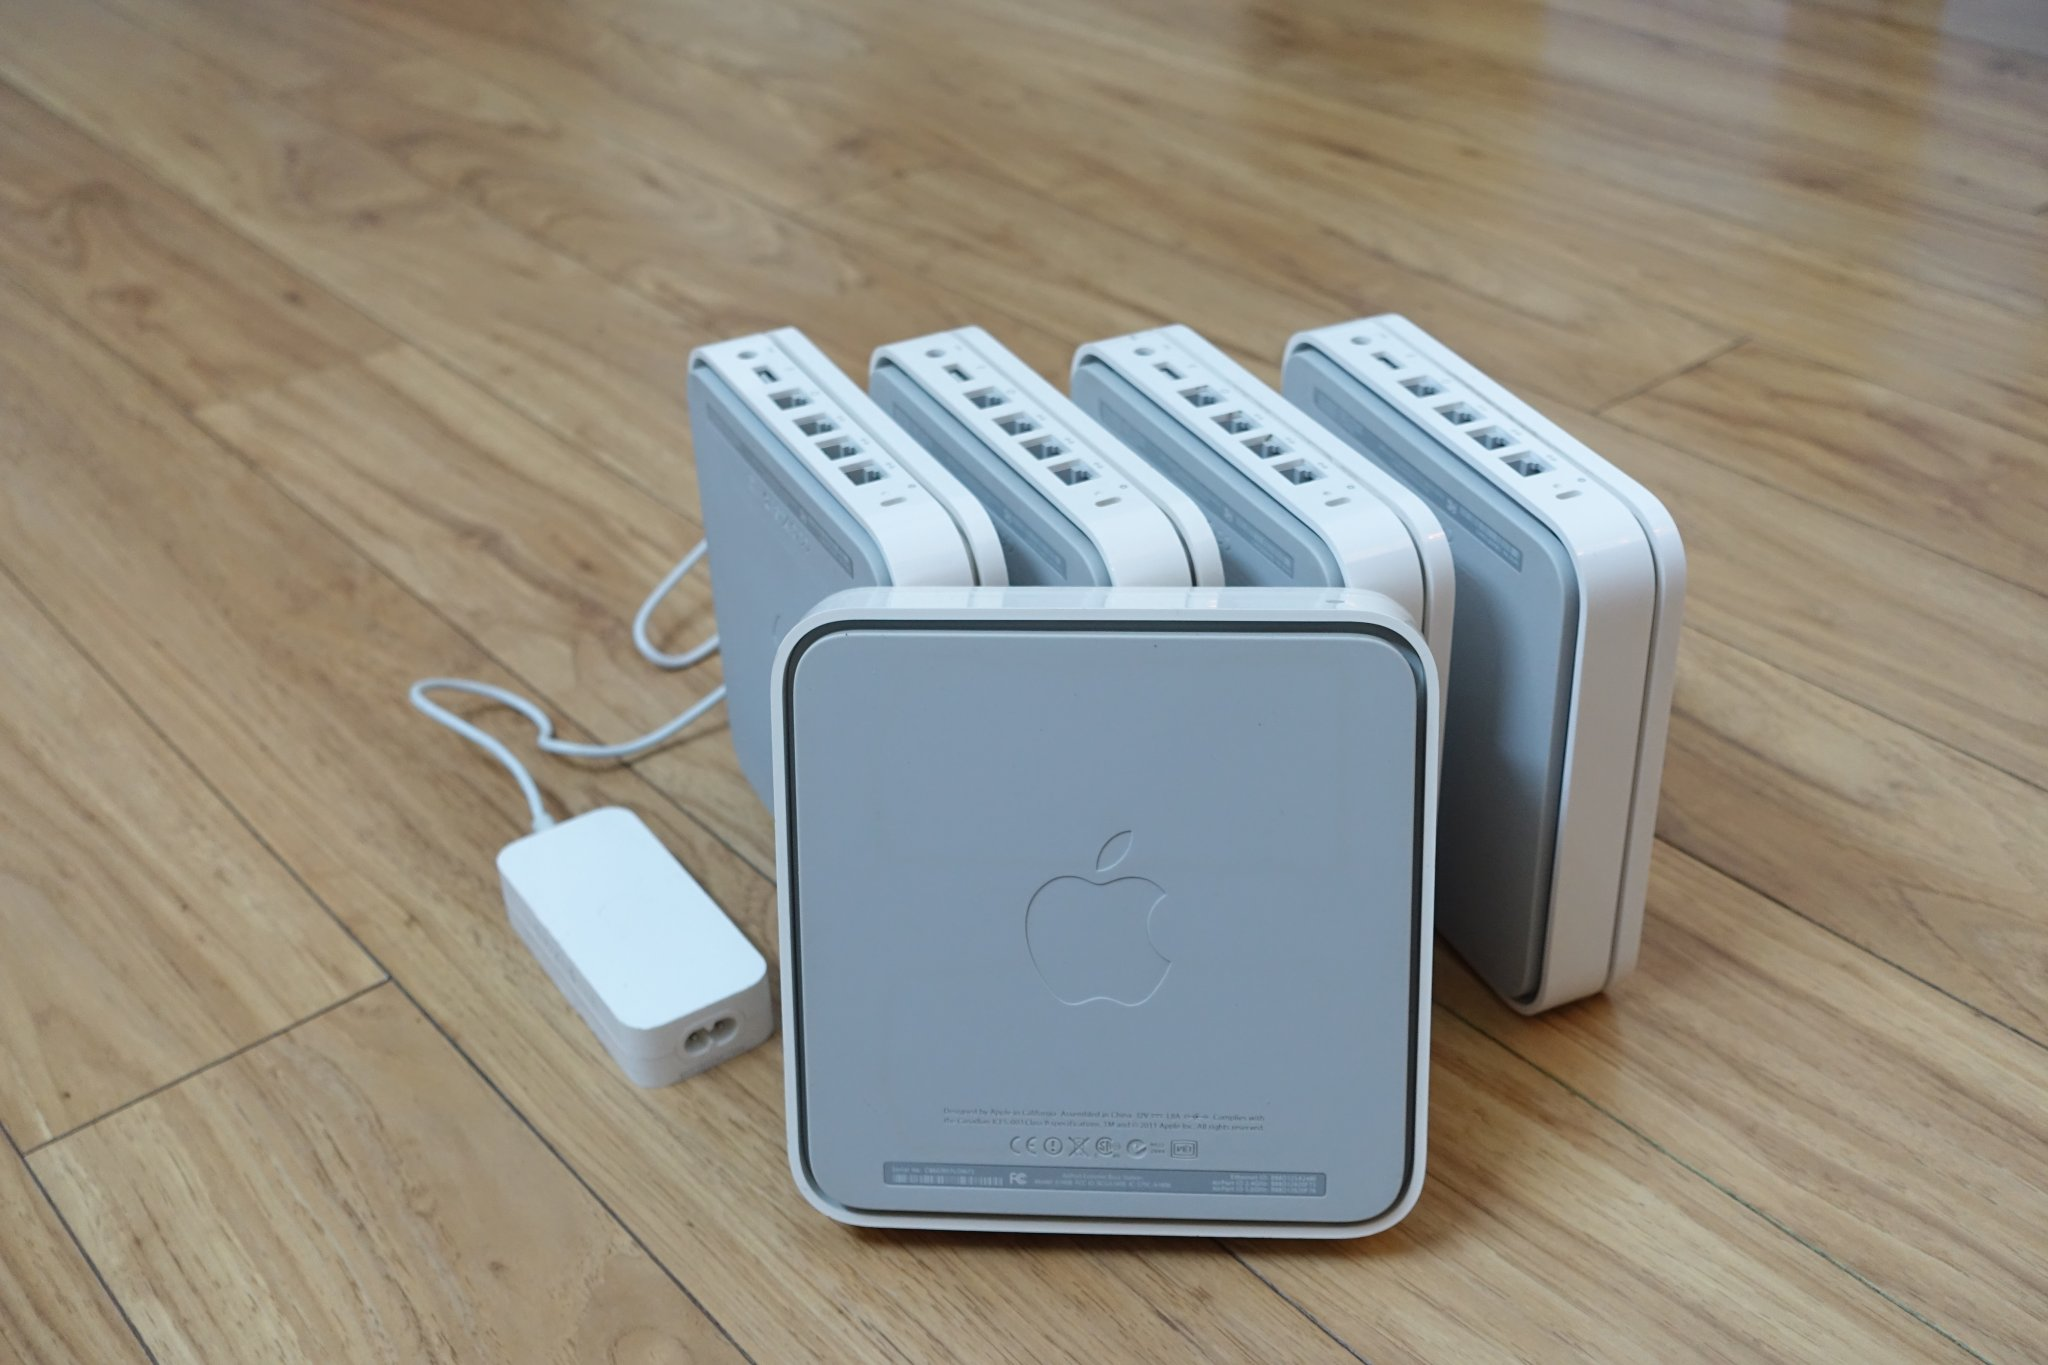 Apple AirPort Extreme A1408 (Used)